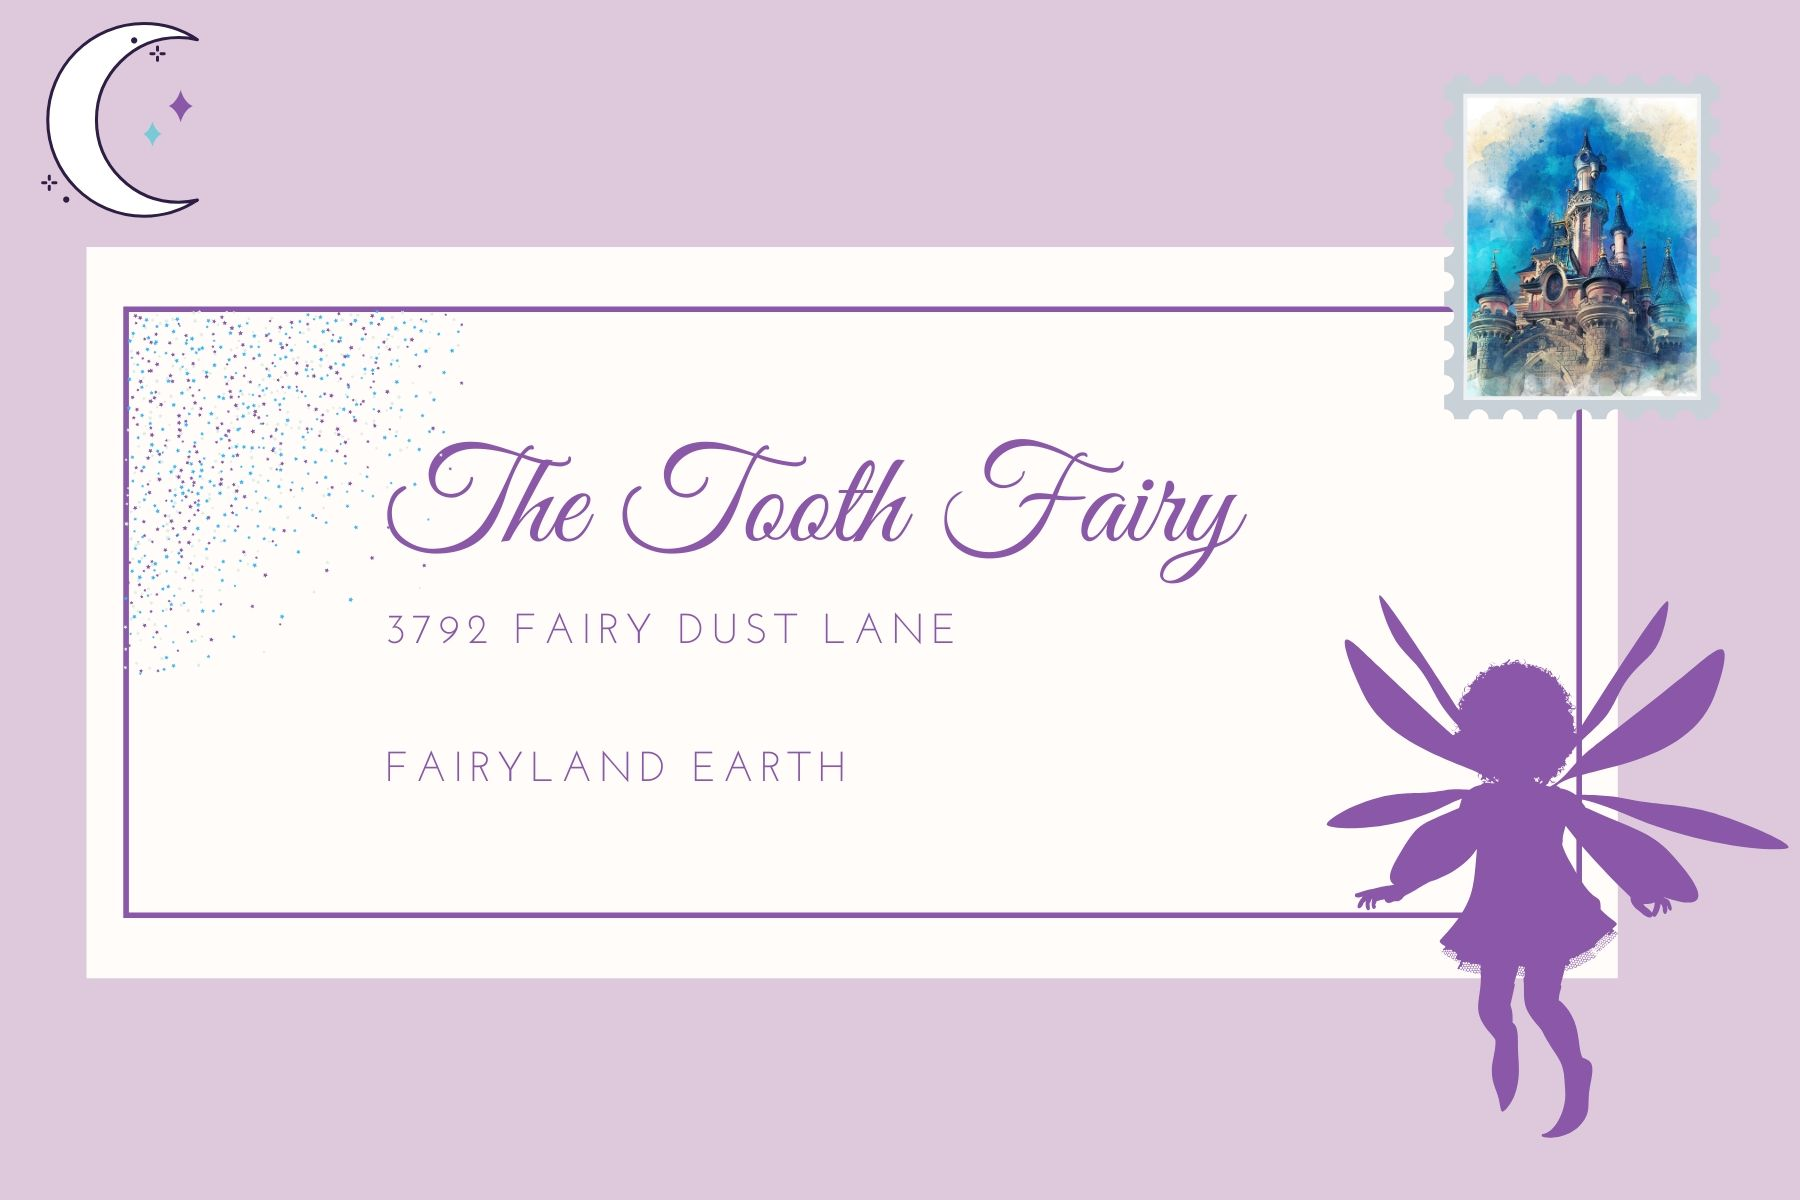 Where does the Tooth Fairy live?